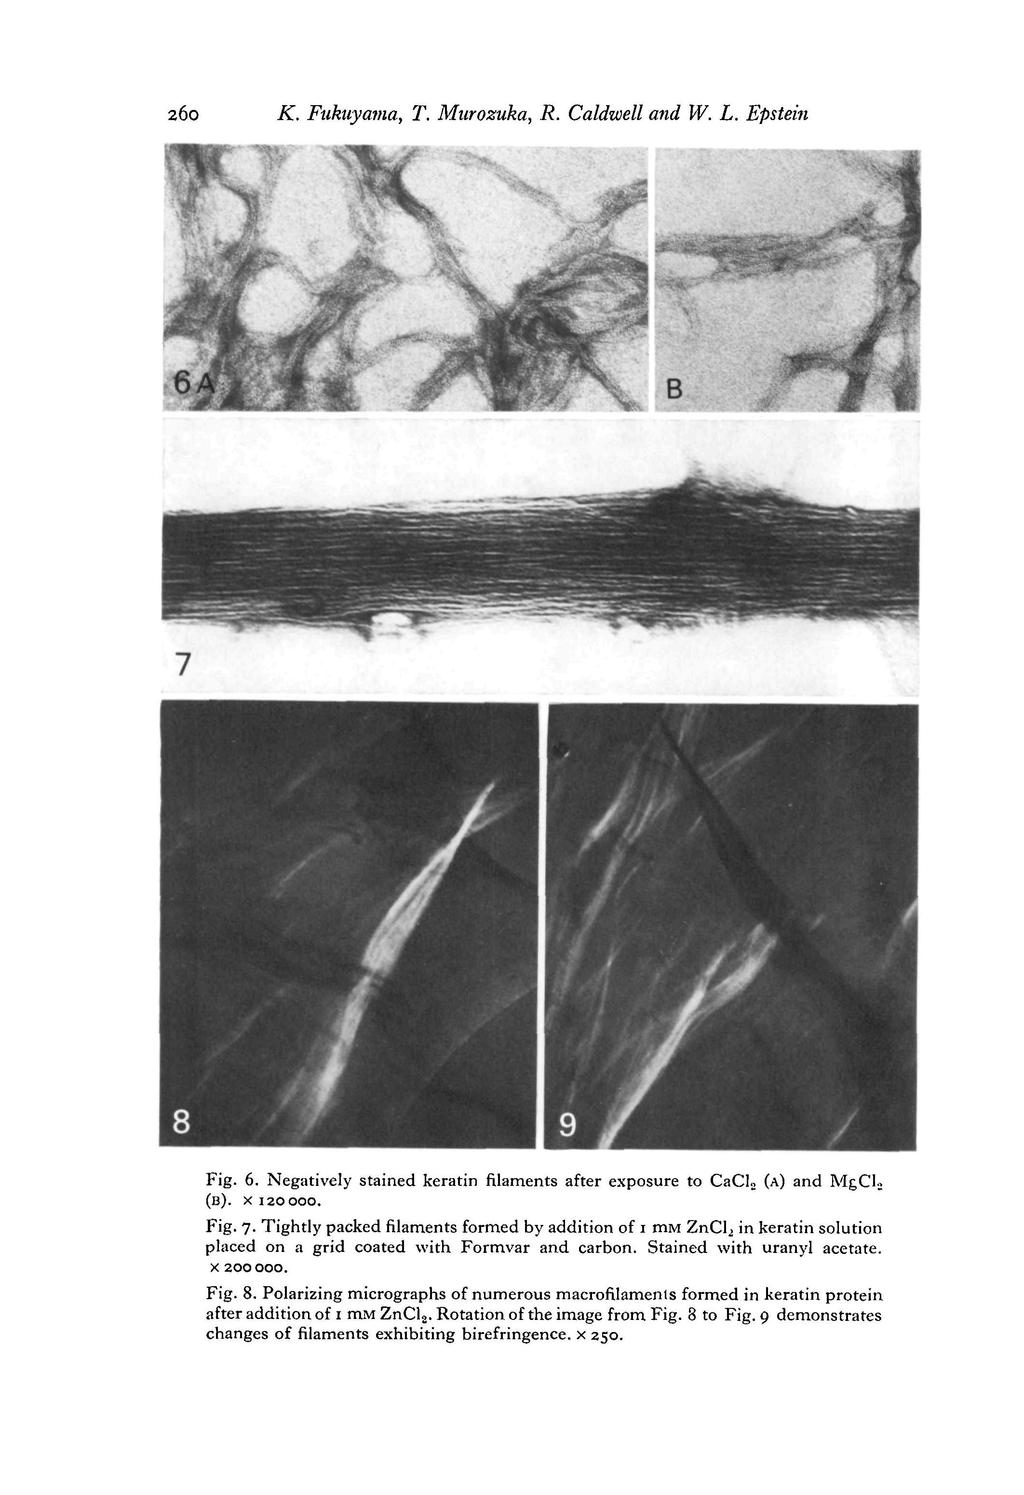 260 K. Fnkuyama, T. Murozuka, R. Caldwell and W. L. Epstein Fig. 6. Negatively stained keratin filaments after exposure to CaCl 2 (A) and MgCl 2 (B). x 120000. Fig. 7.